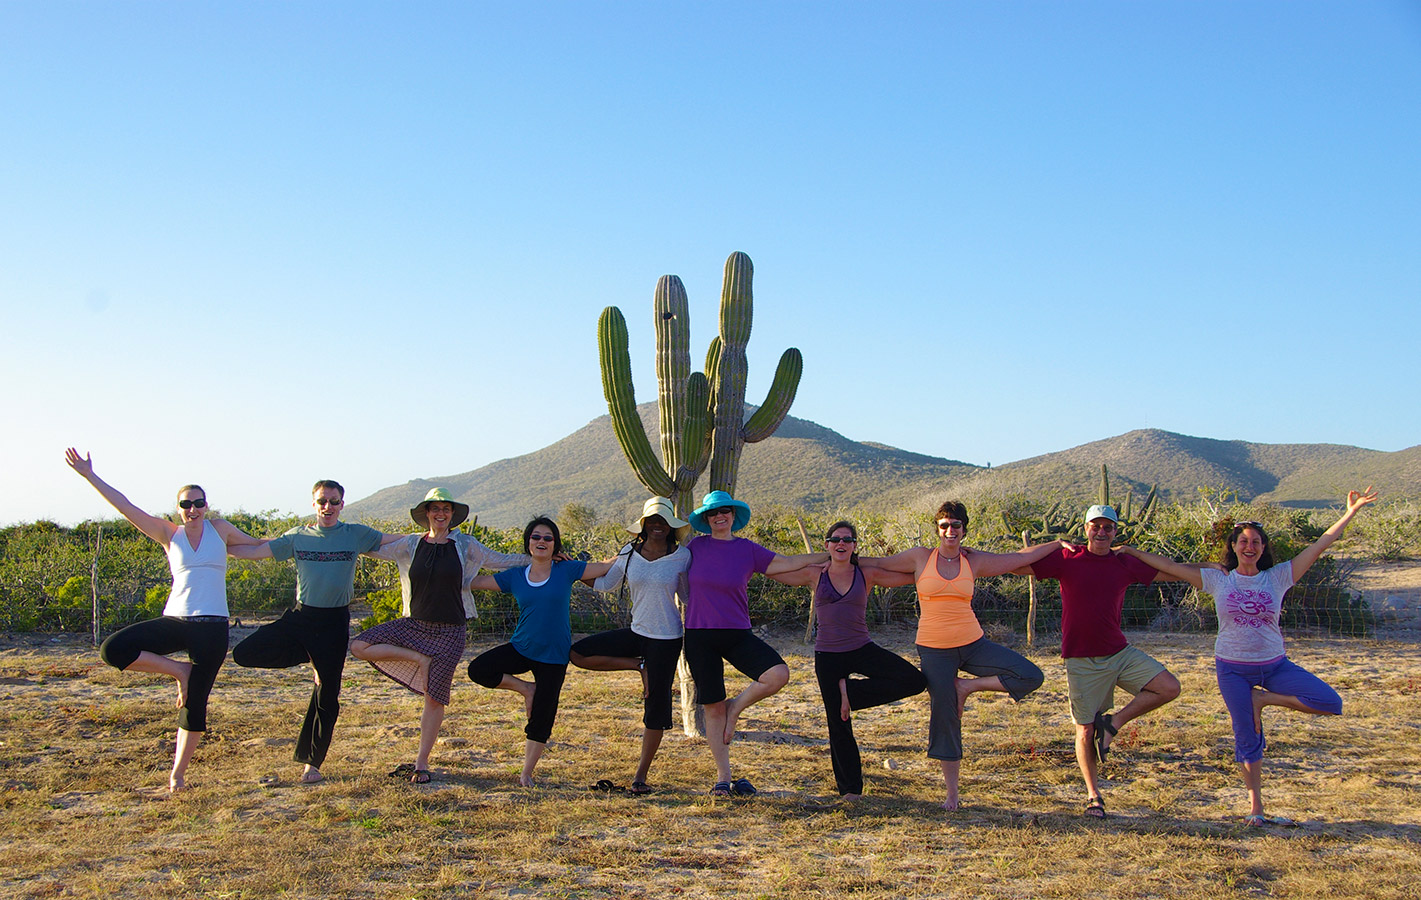 Tree Pose in the Desert - Yoga Retreat - Mexico